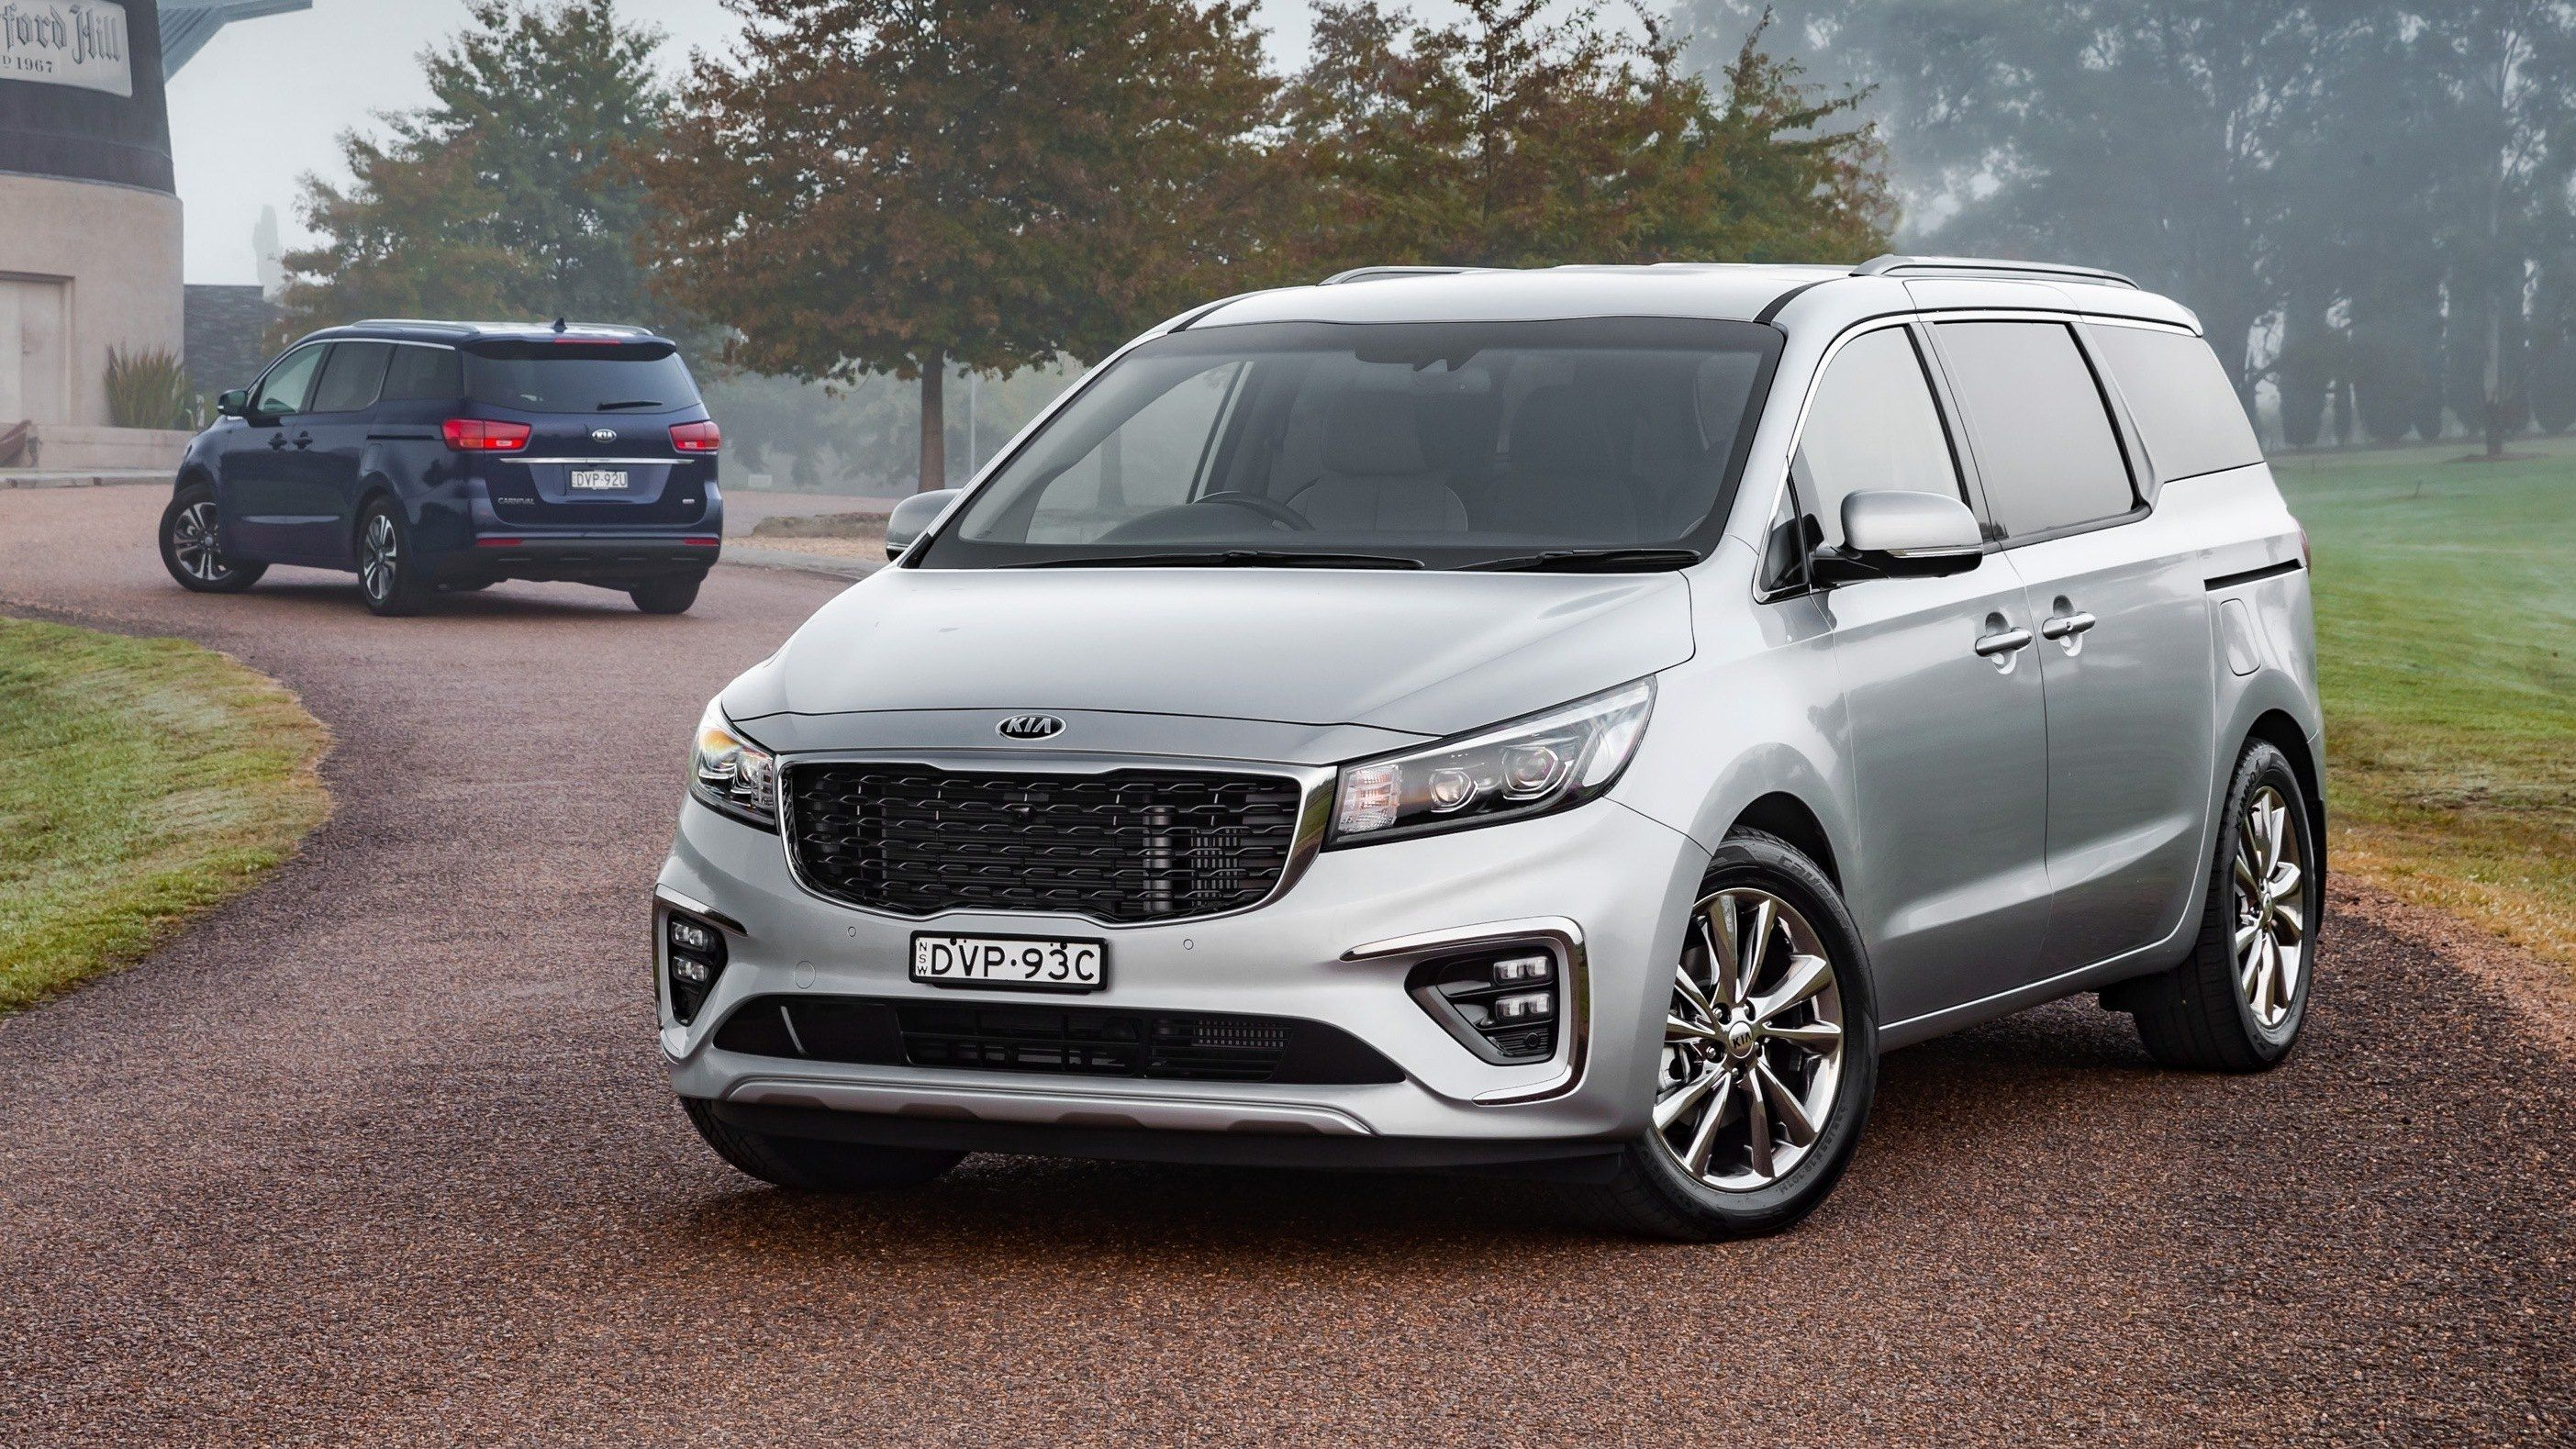 The Best New Kia Carnival 2020 Exterior Kia Sedona Kia